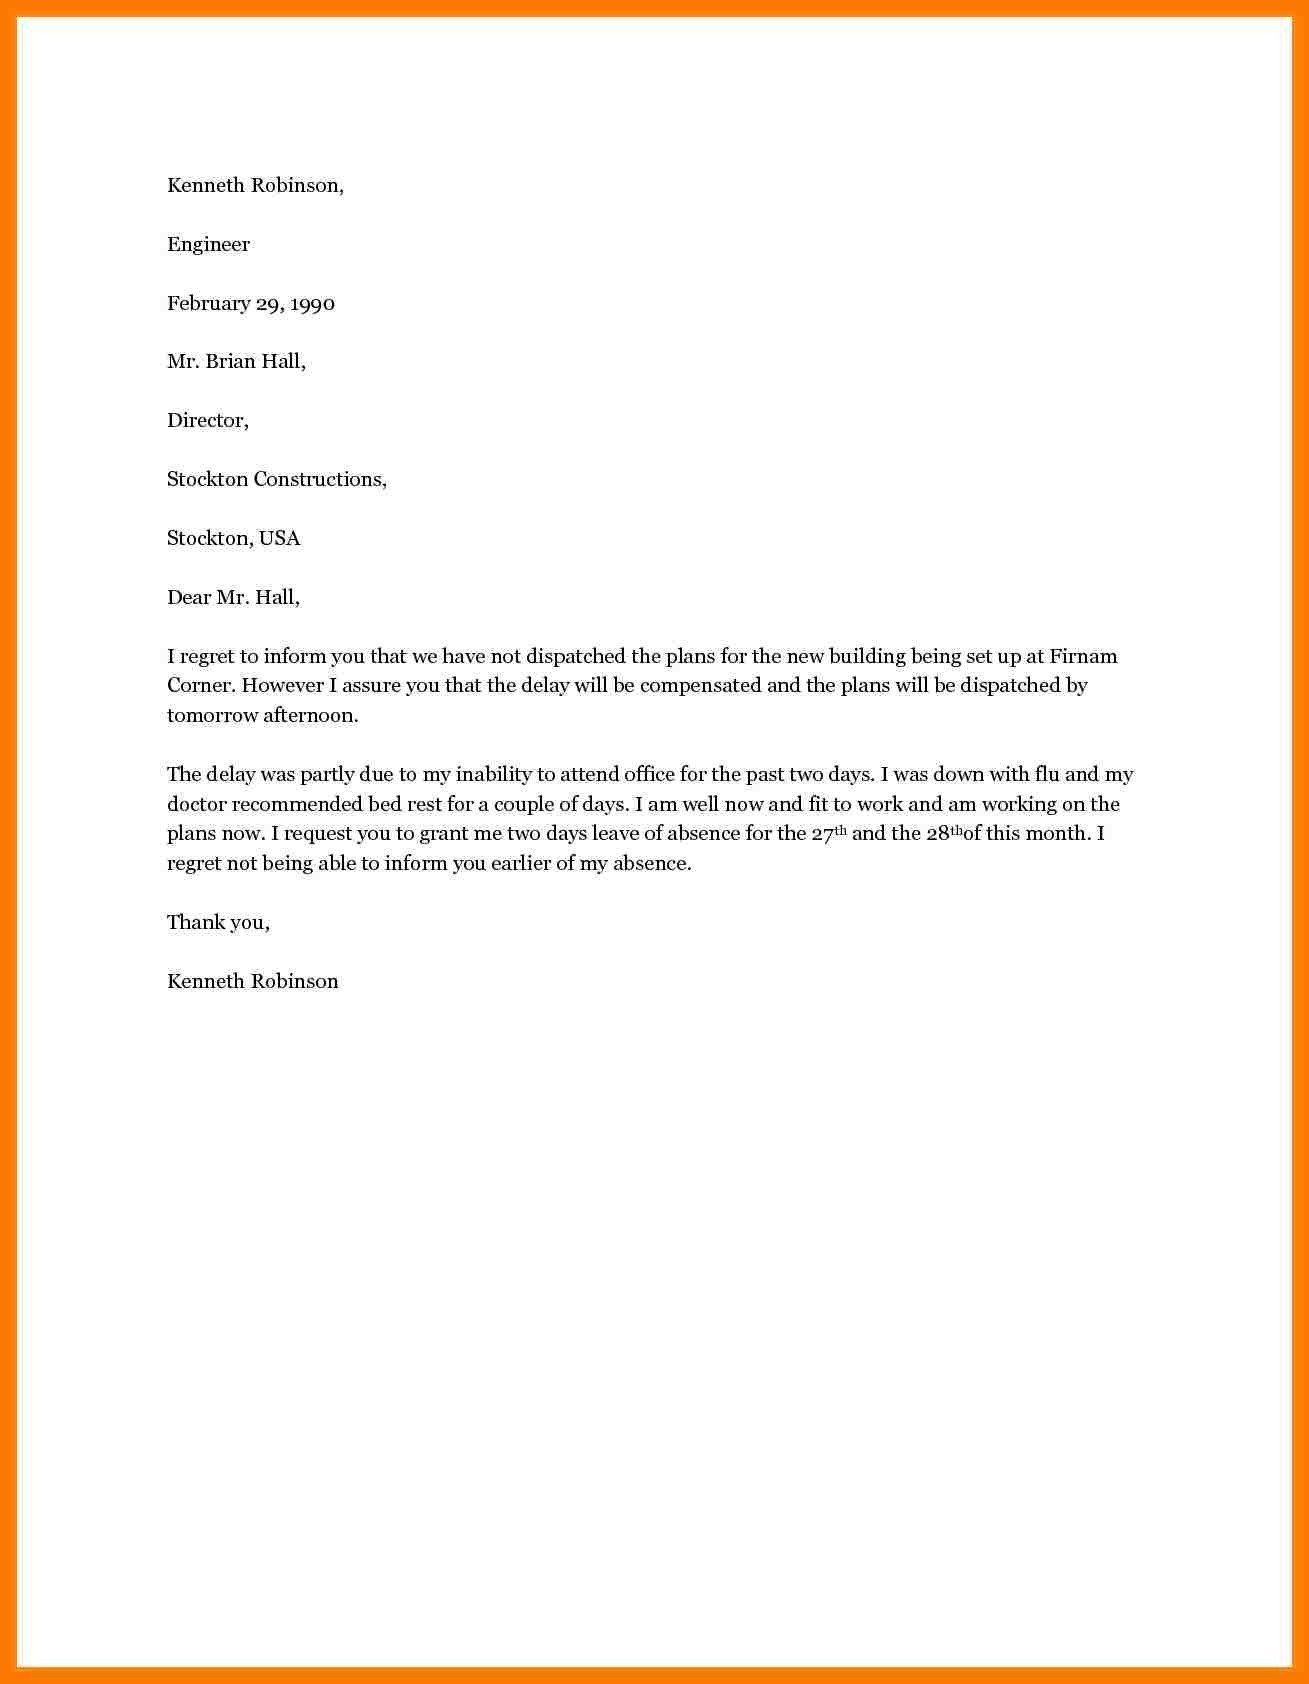 Audit Confirmation Letter Template Samples | Letter ...